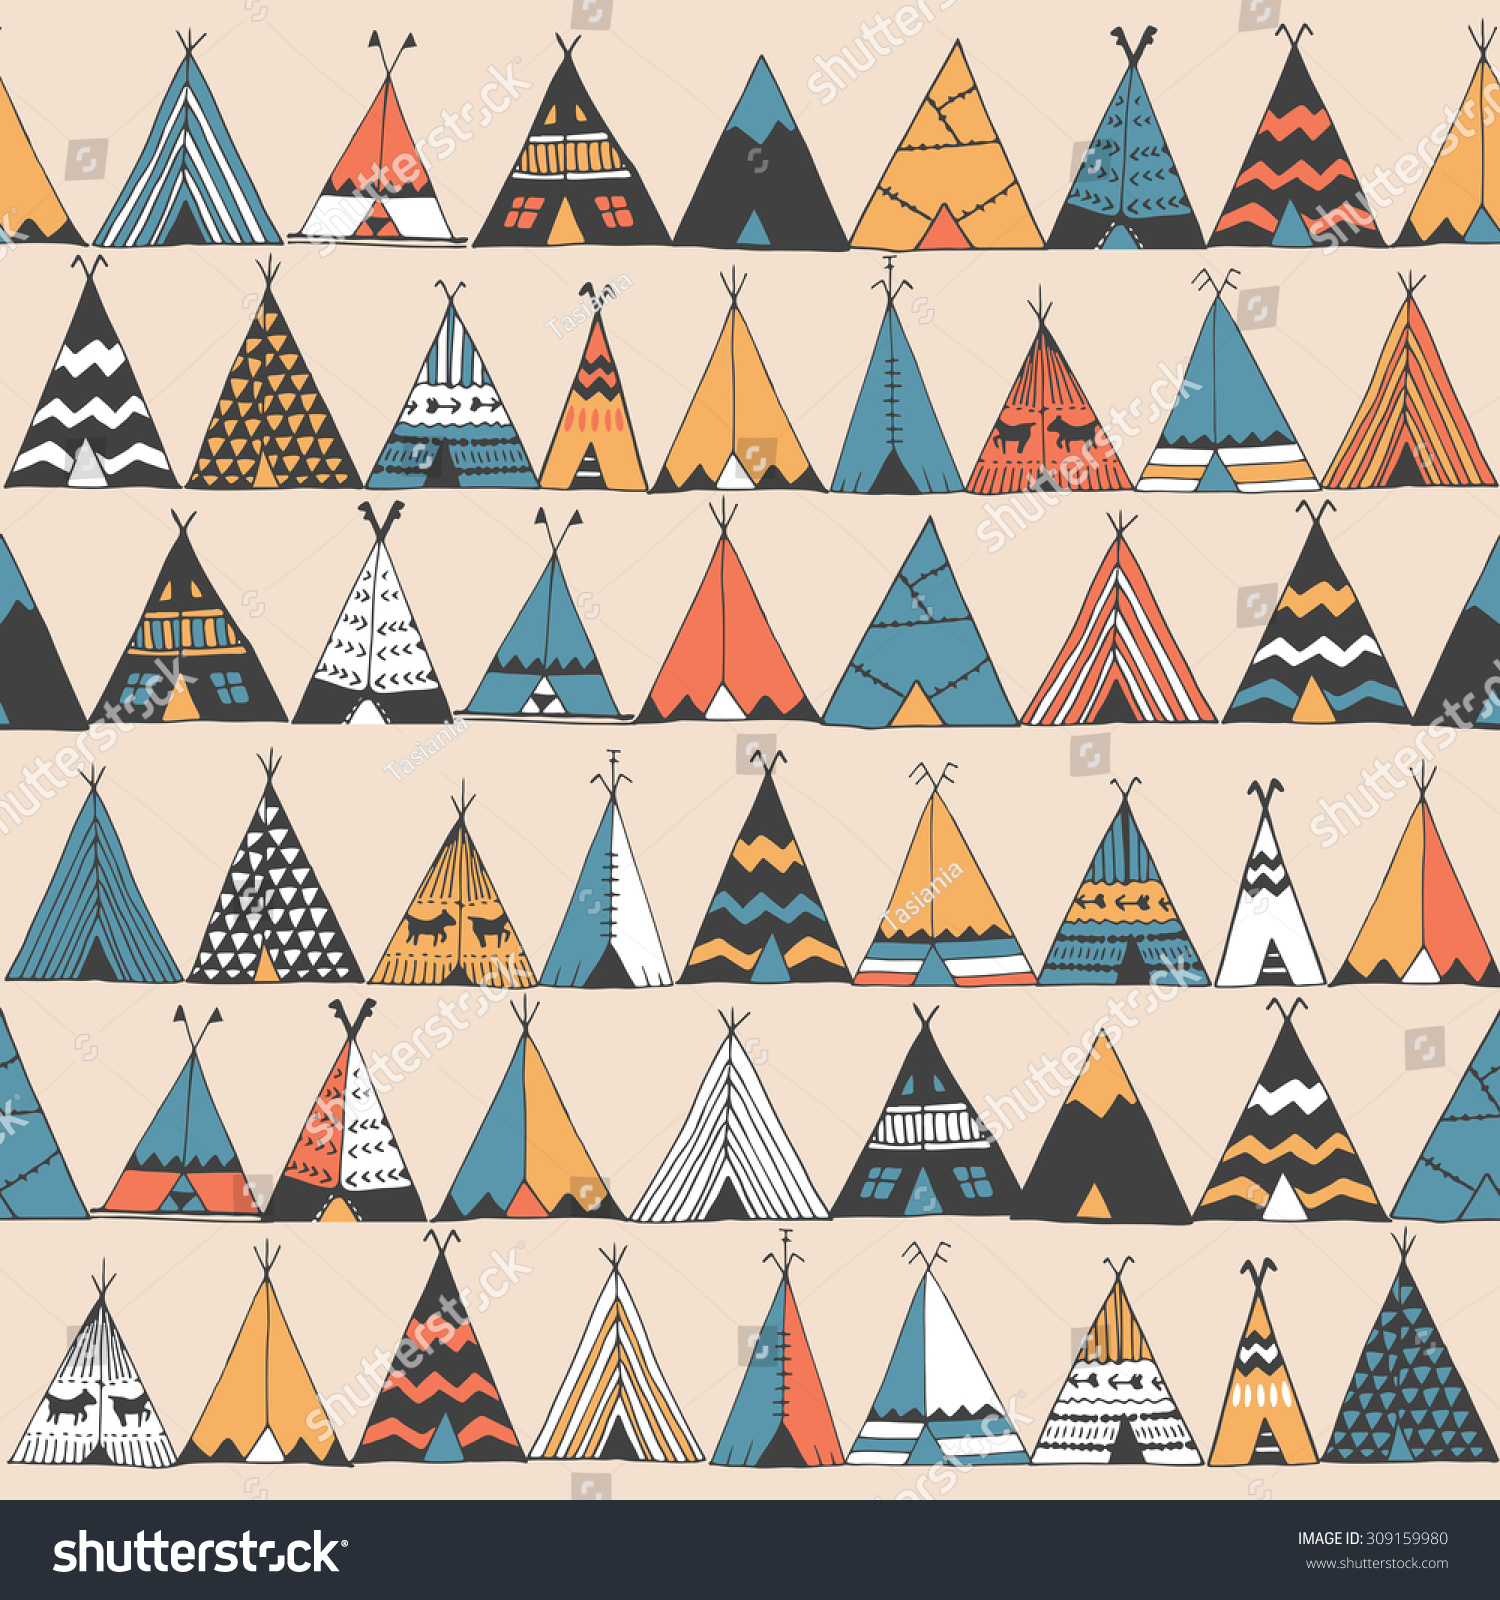 teepee pattern wigwam native american summer stock vector 309159980 shutterstock. Black Bedroom Furniture Sets. Home Design Ideas